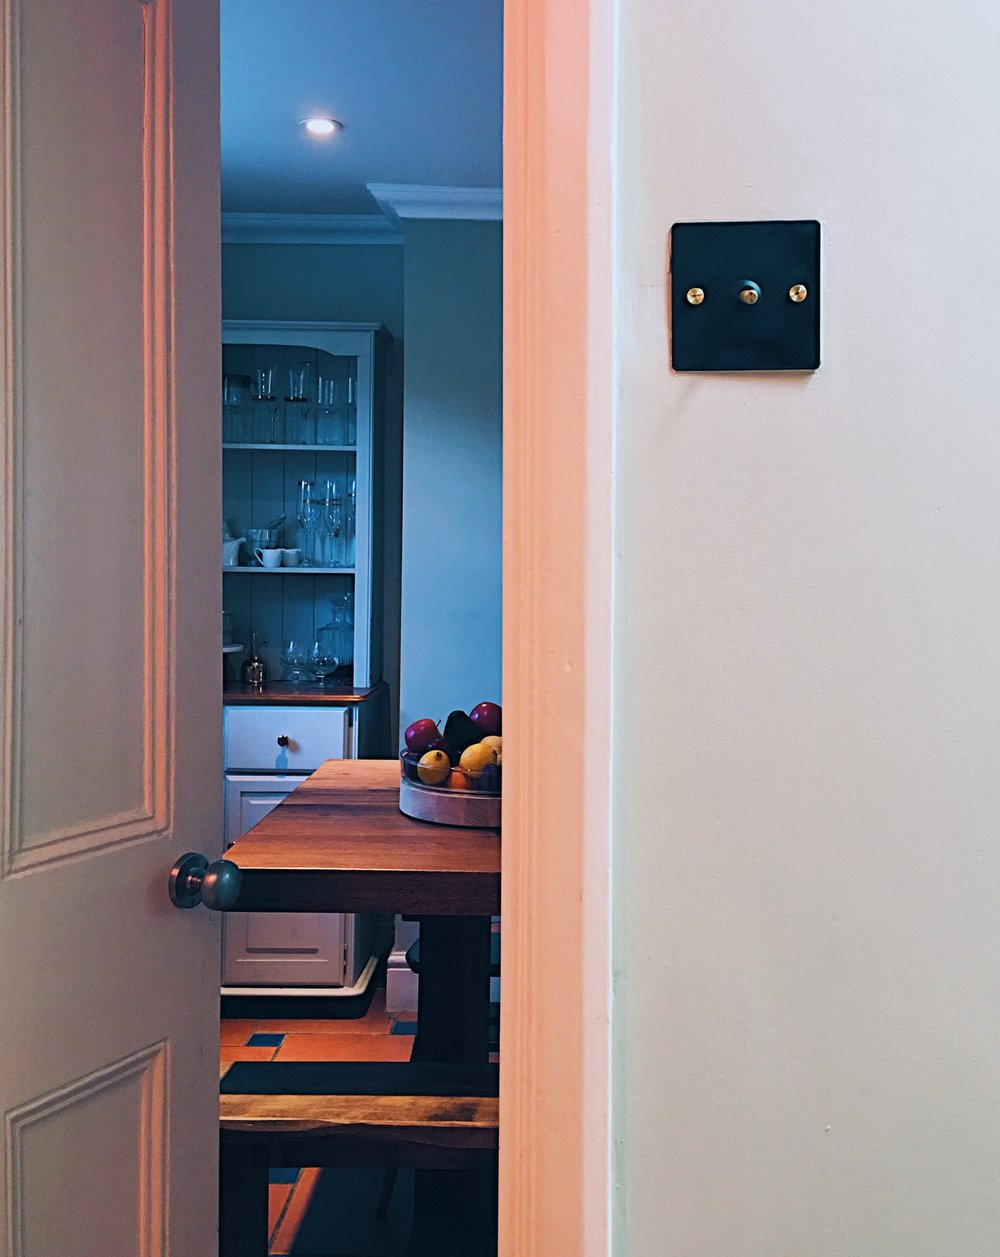 An Easy Guide On How To Change Over A Light Switch Plate Melanie Toggle Wiring For House And Here Is My Sexy Buster Punch Up Being Used After 10 Minute By Moi I Love It Complements Hallway Better With The